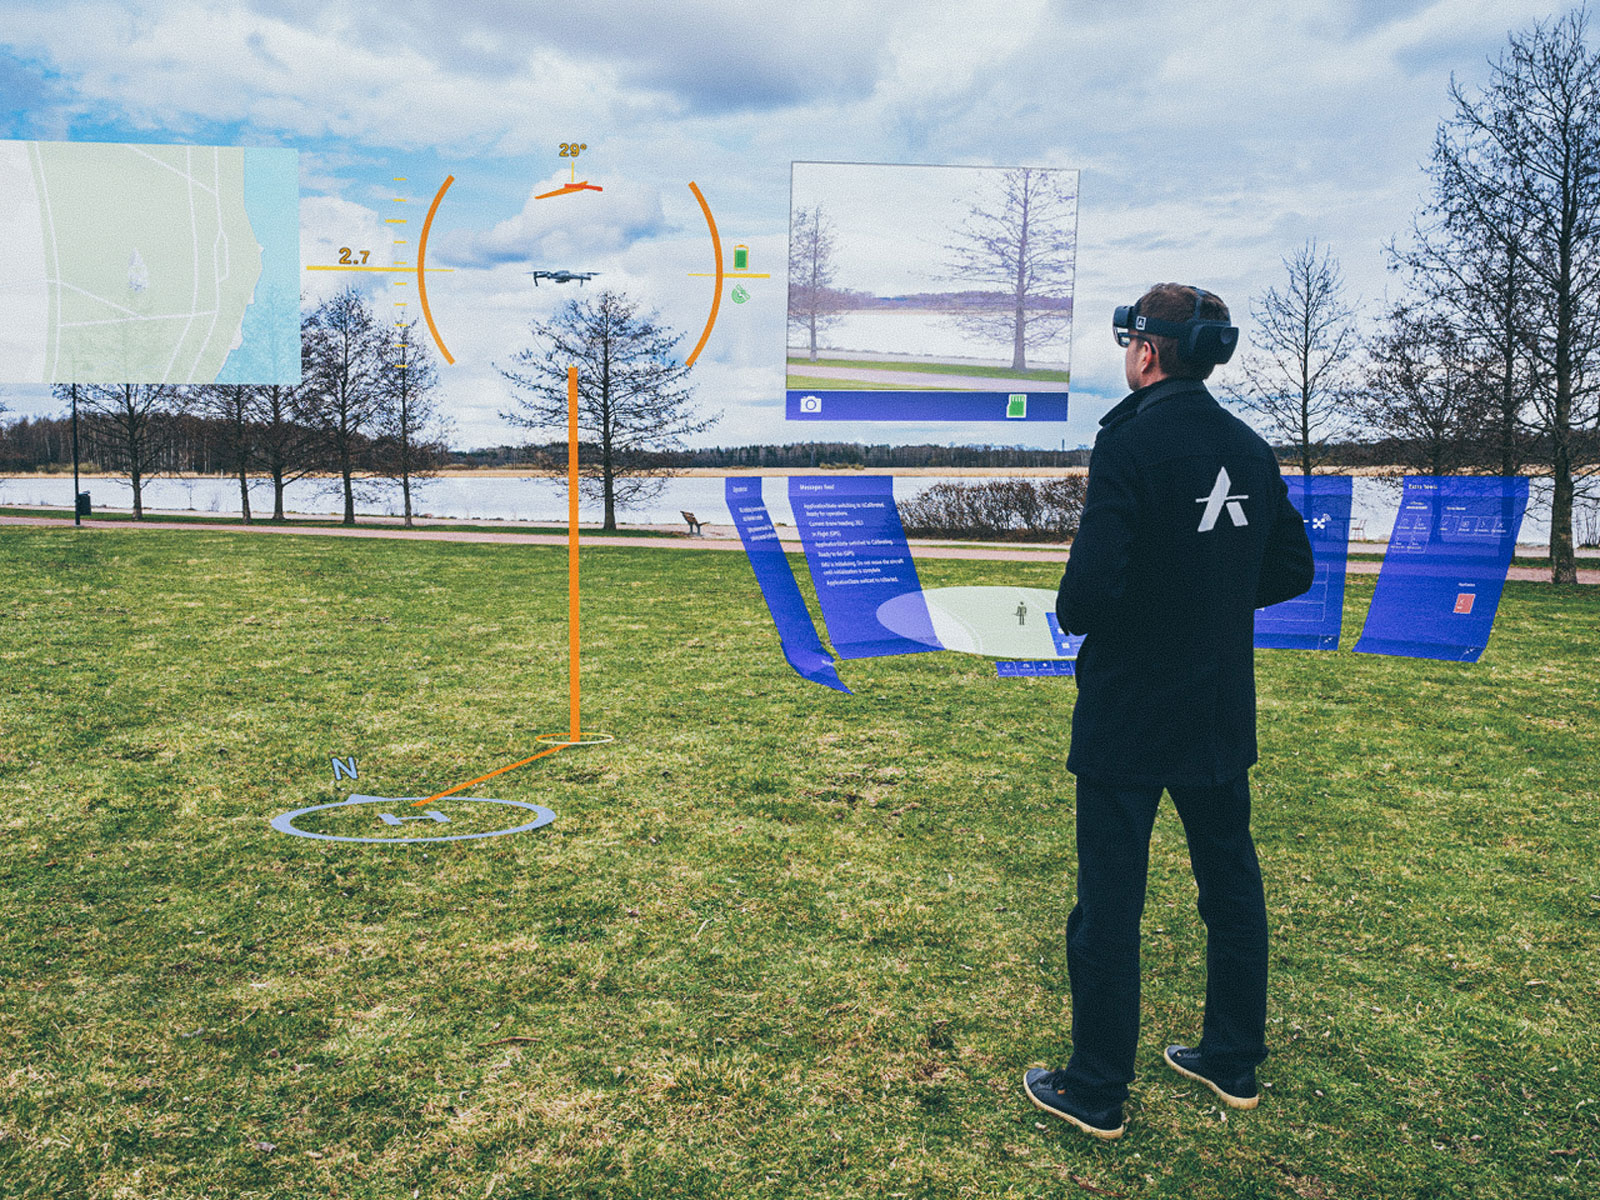 Anarky Labs AirHUD application in use. A person in black clothes is standing on green grass wearing VR goggles. The hud is presented in a visual form around him.